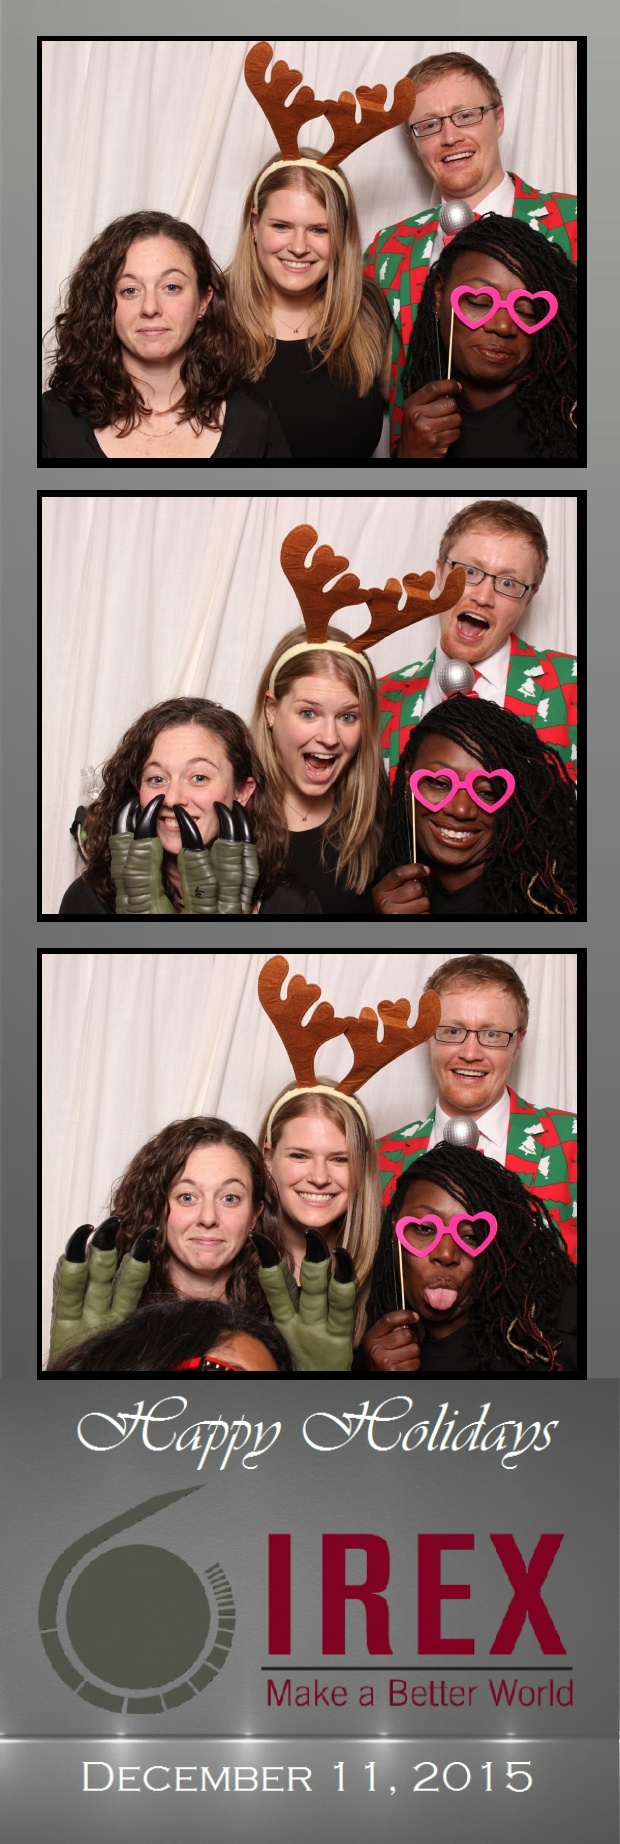 Guest House Events Photo Booth Strips IREX (3).jpg